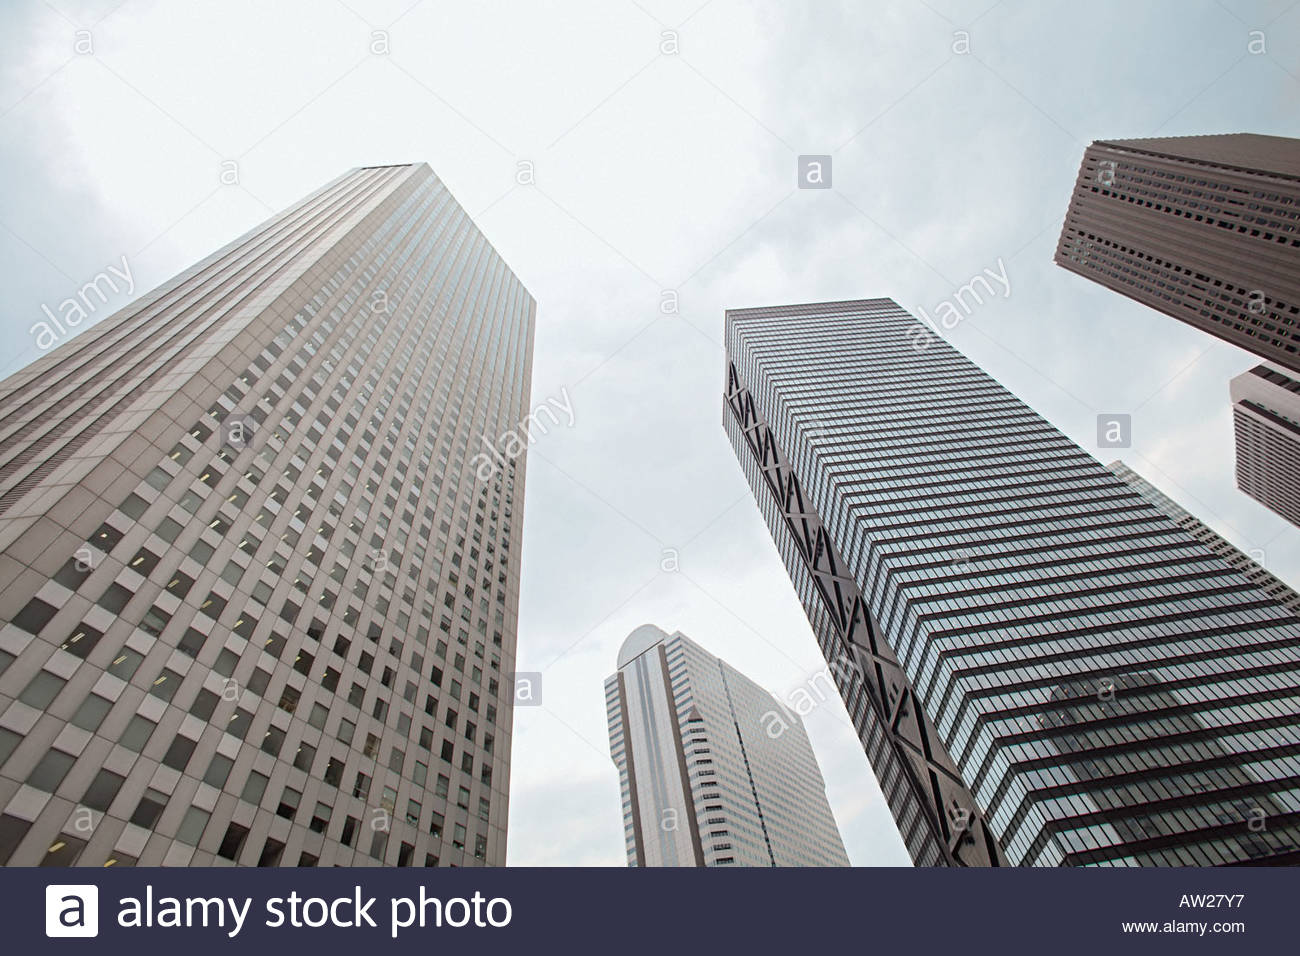 Skyscrapers - Stock Image